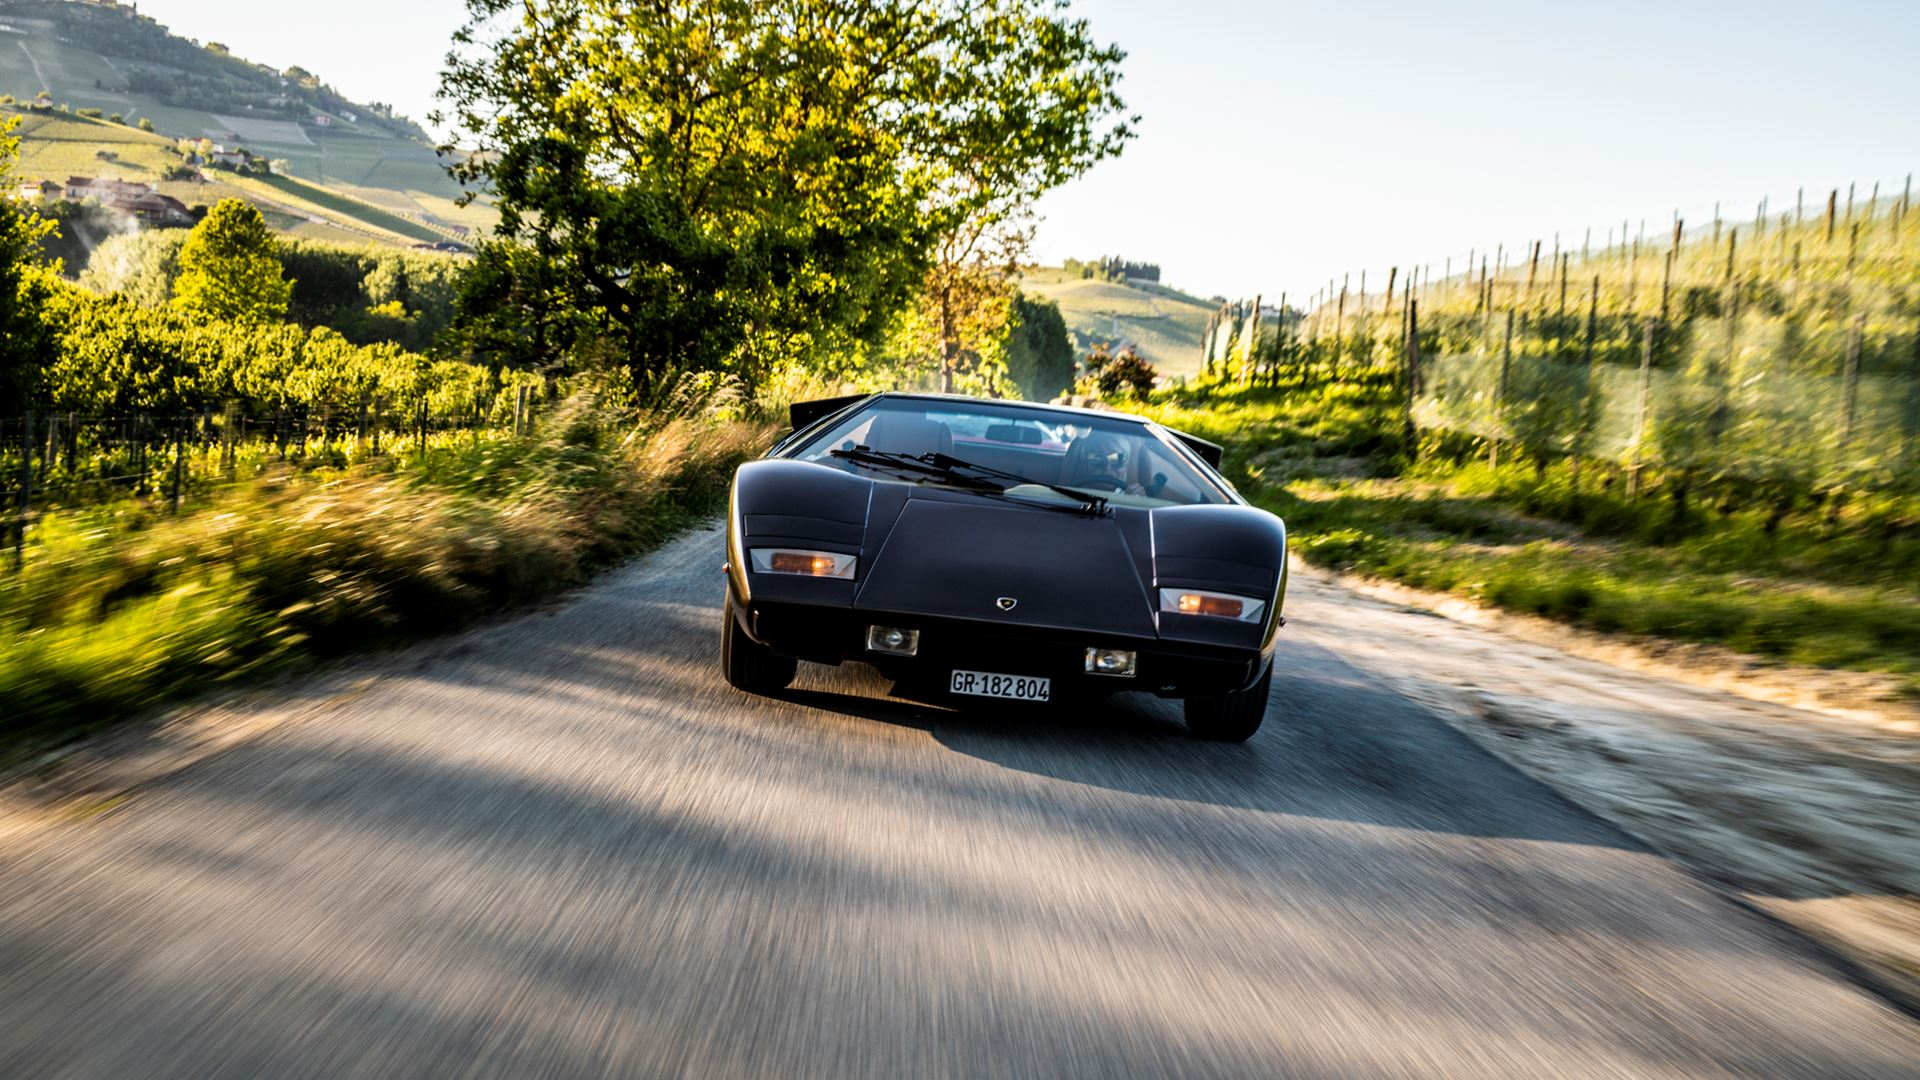 The legacy of the Lamborghini Countach in a video series. From the idea car, the LP 500 of 1971, to five generations spanning seventeen years - Image 2